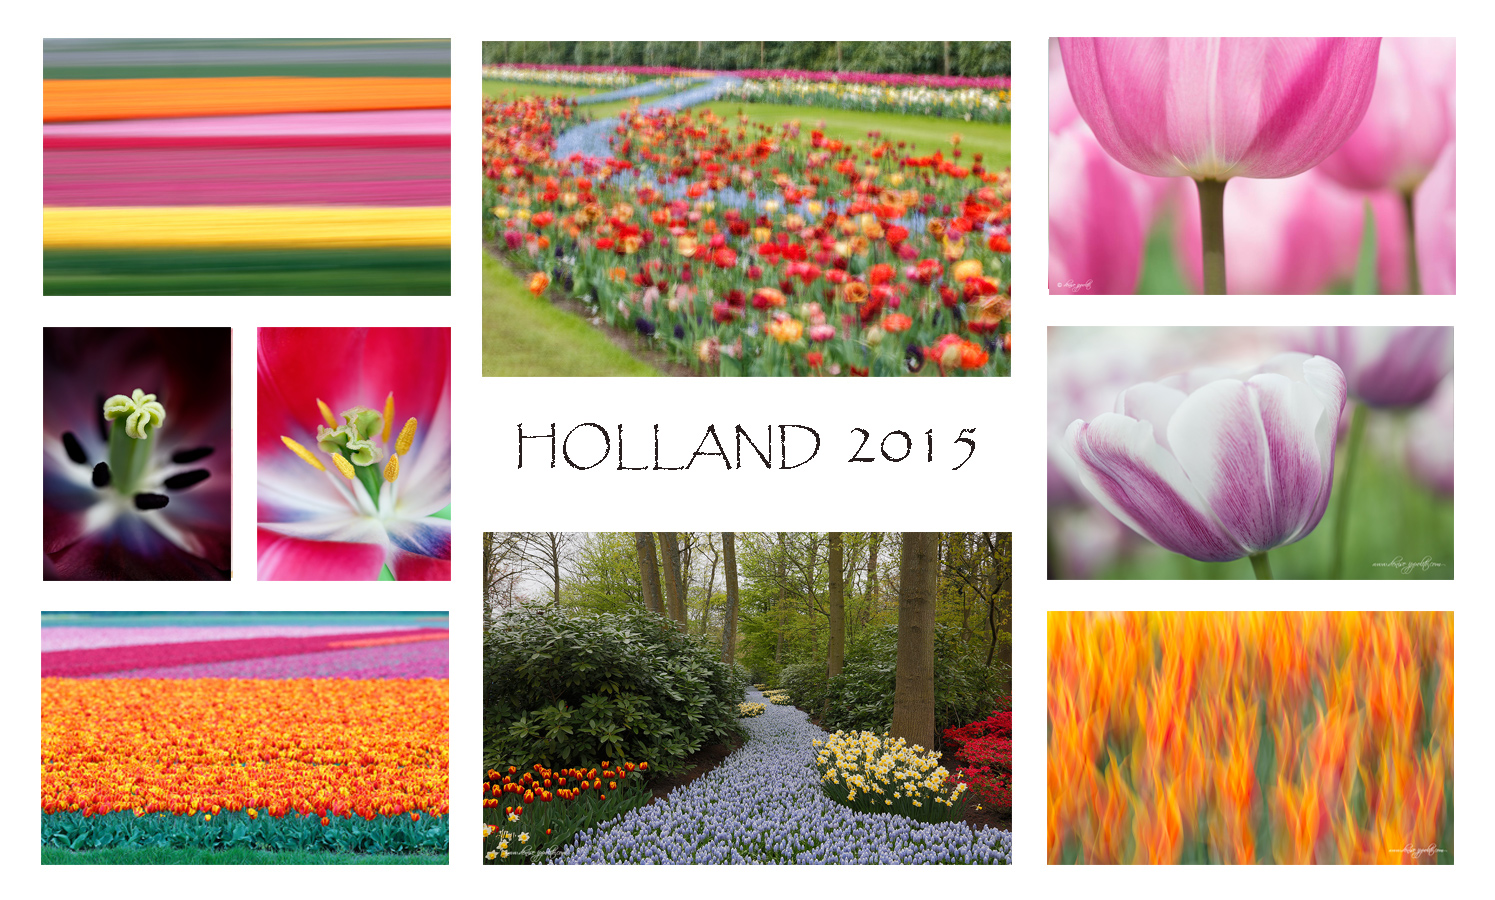 holland-2015-card